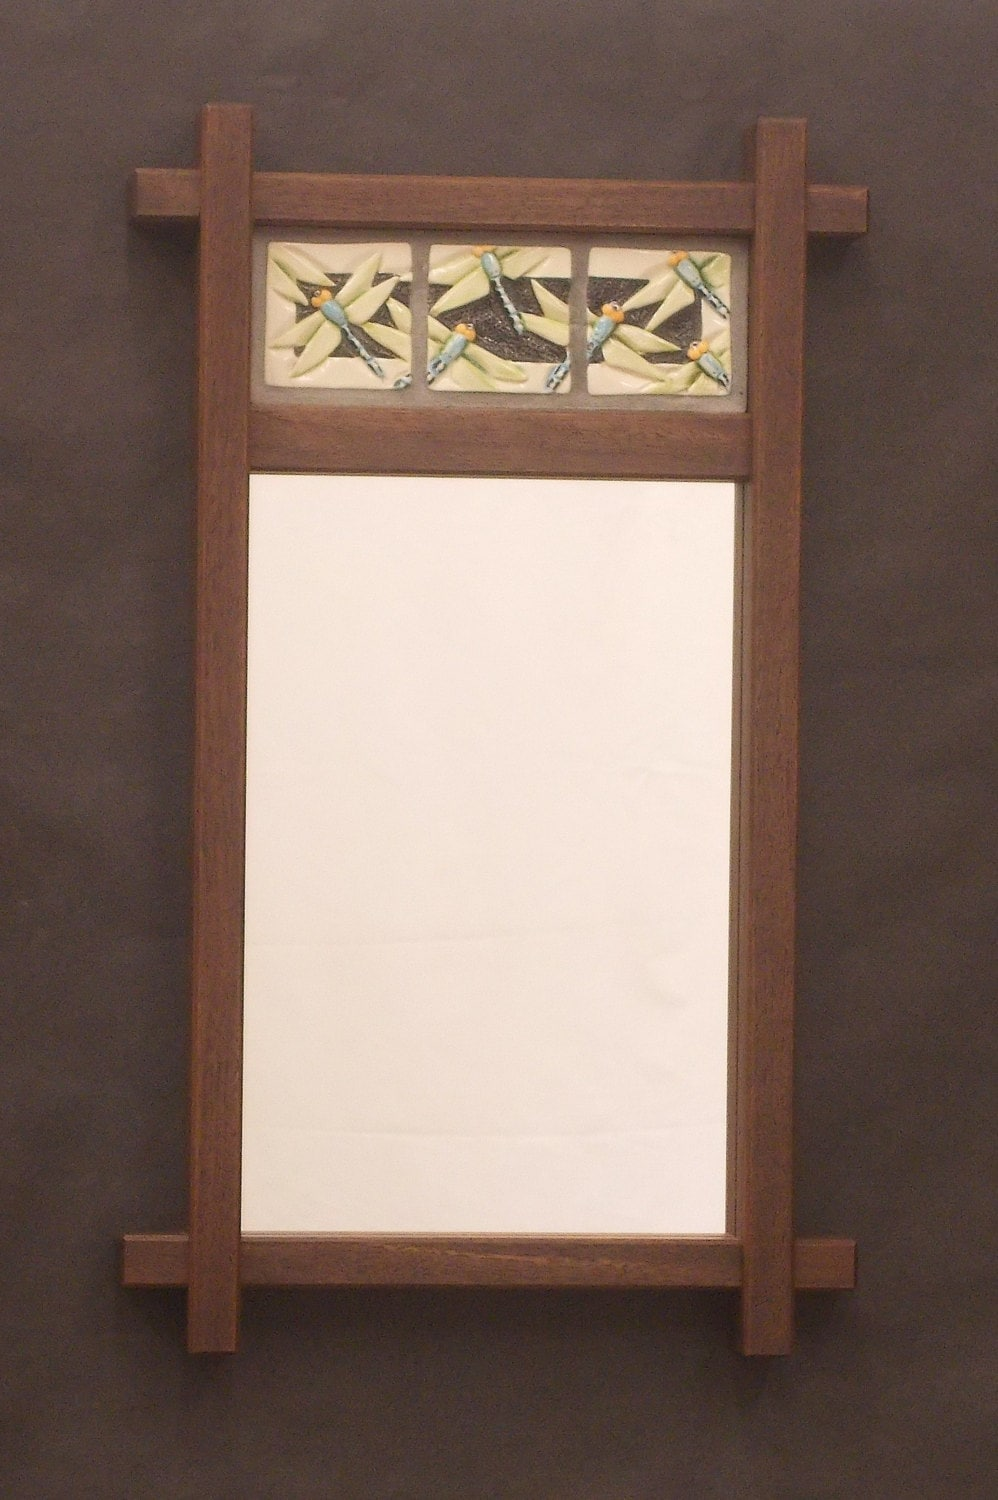 Decorative mirror arts and crafts mission style by for Craftsman vs mission style